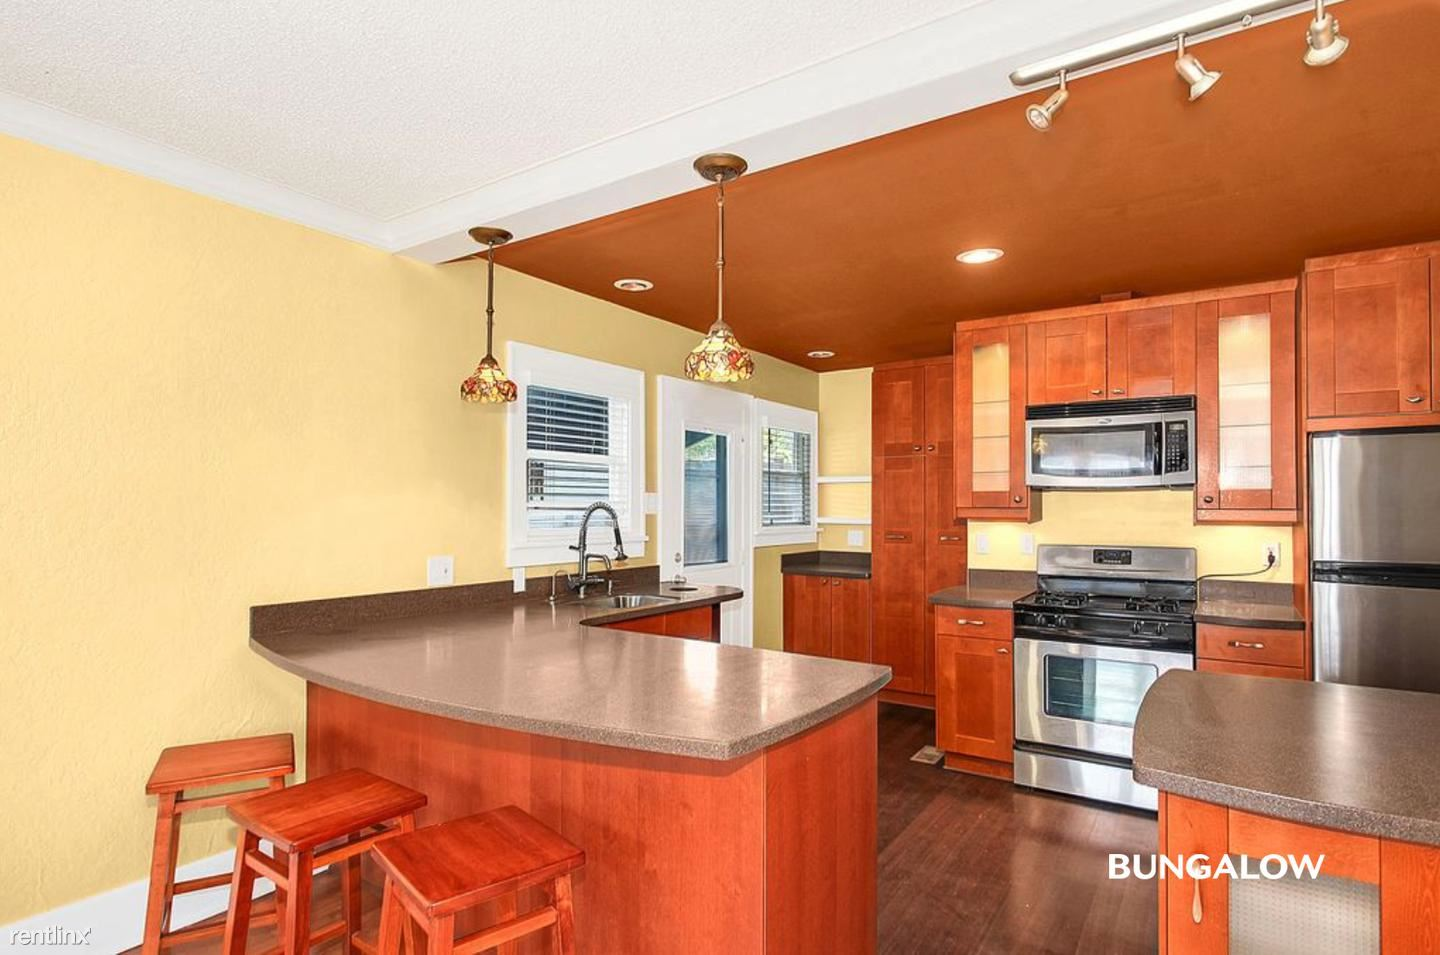 922 N 45th St - 830USD / month